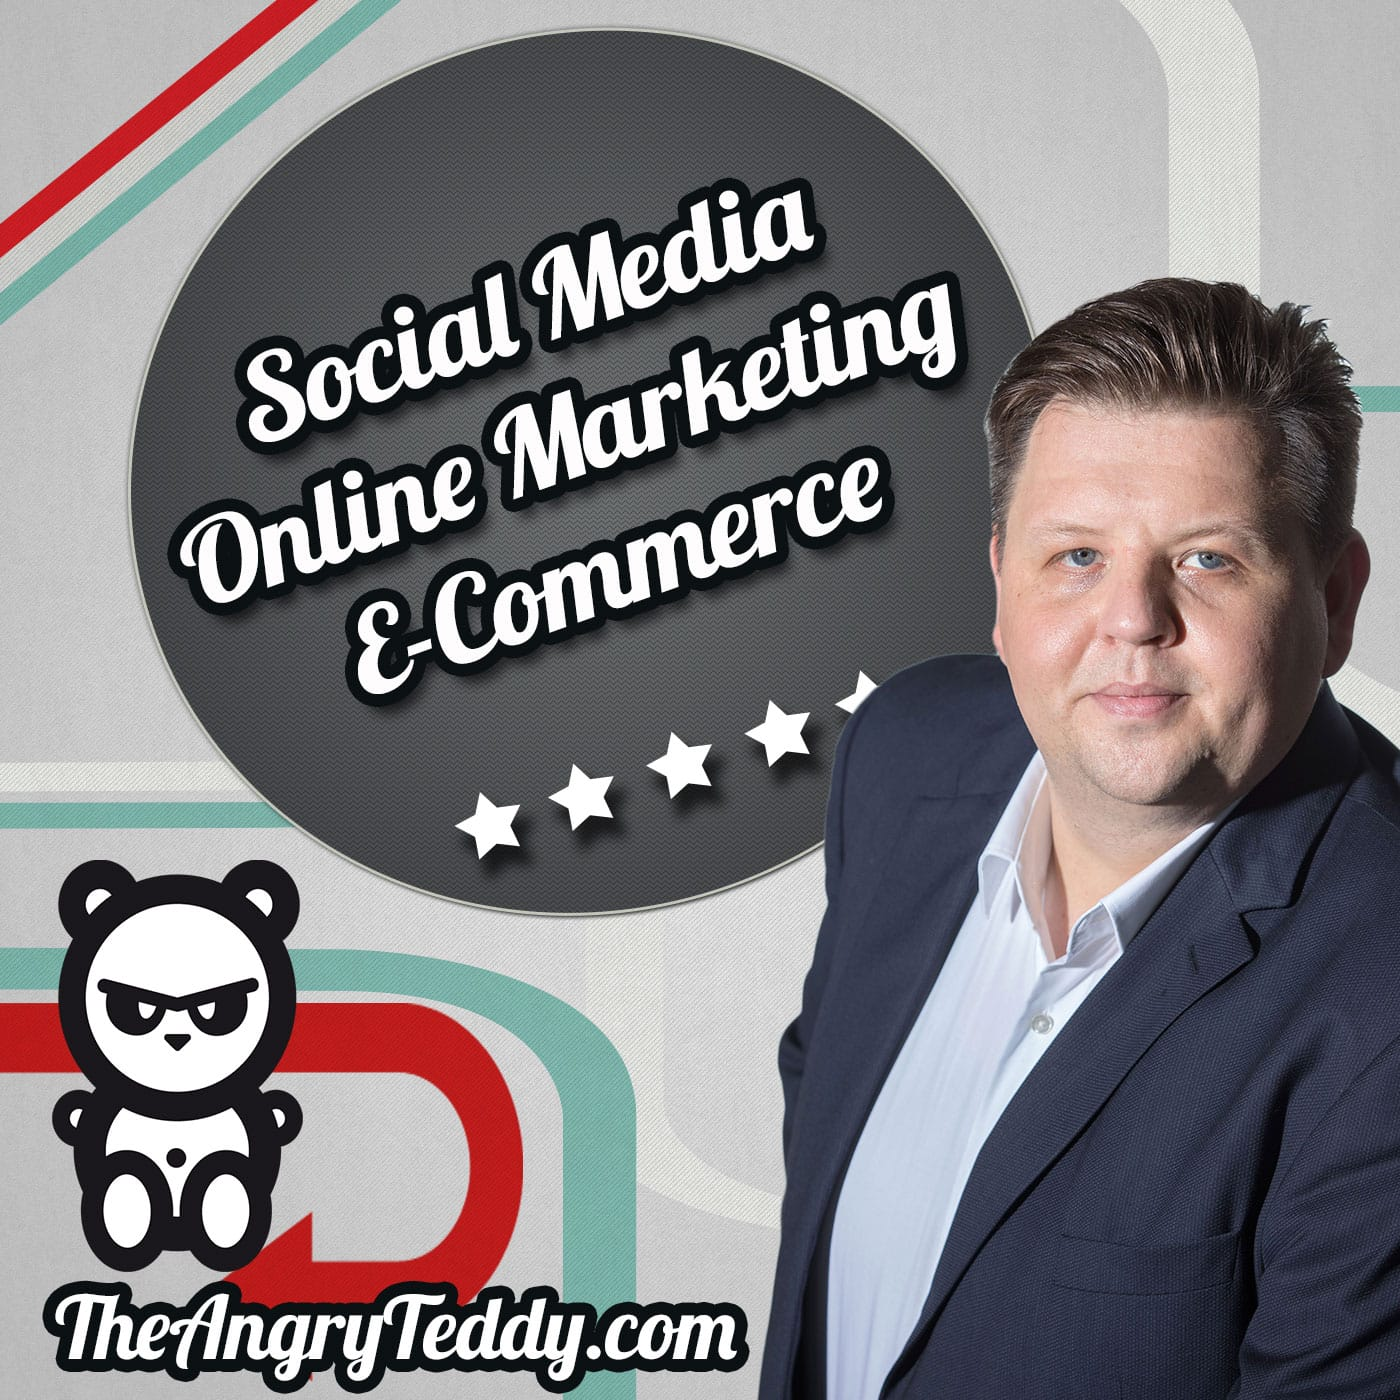 Impulse zu Social Media, Online Kommunikation & E-Commerce by The Angry Teddy aka. Daniel Friesenecker